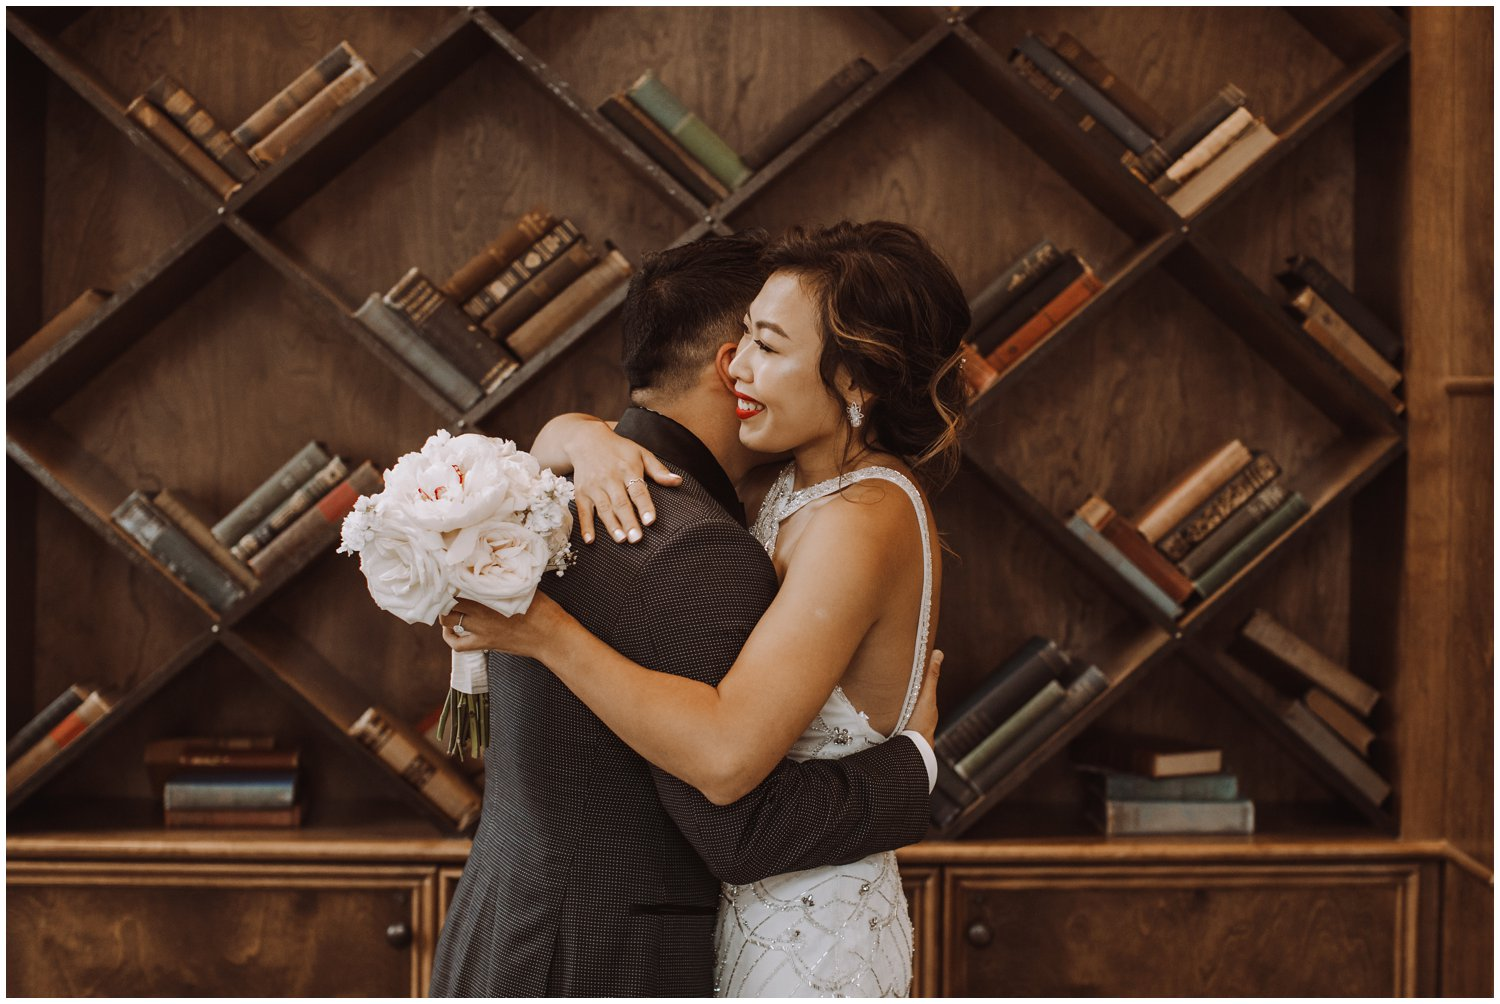 Peabody Library Wedding | Hotel Revival Baltimore Wedding | Art Deco Wedding | Baltimore City Wedding | Kate Ann Photography